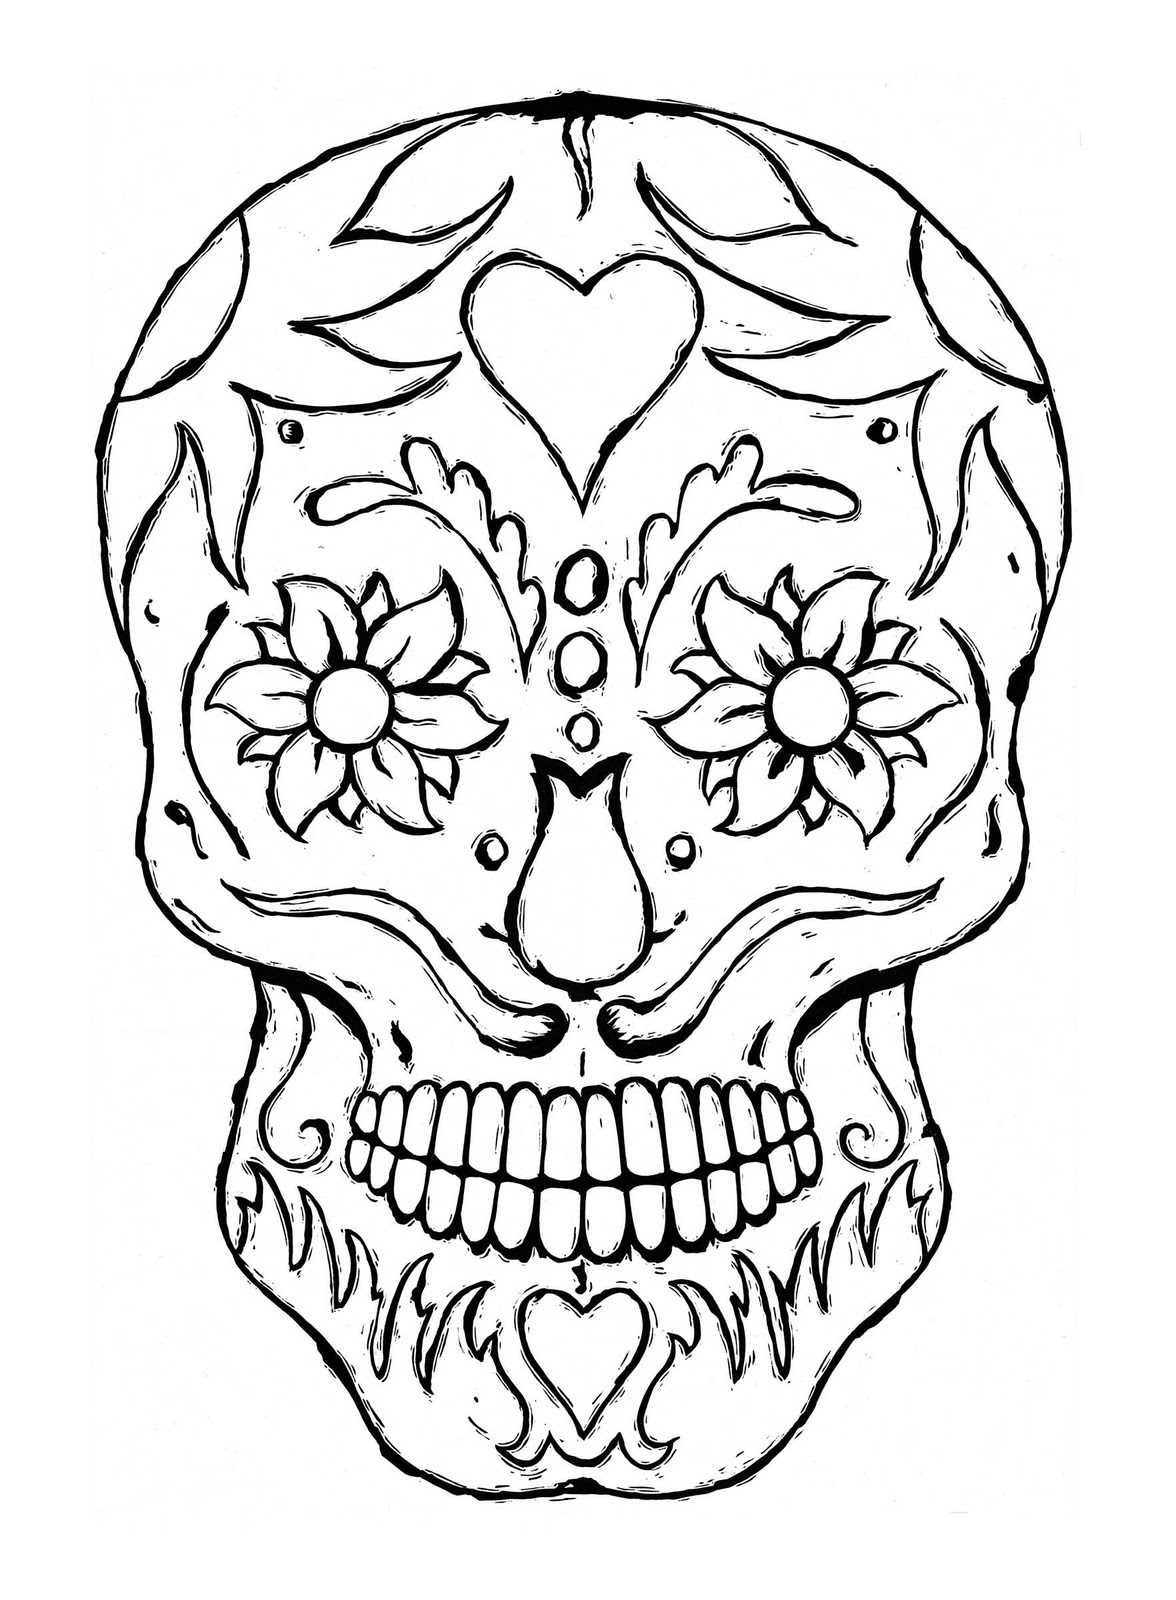 Full Coloring Pages For Printing at GetDrawings.com | Free ...